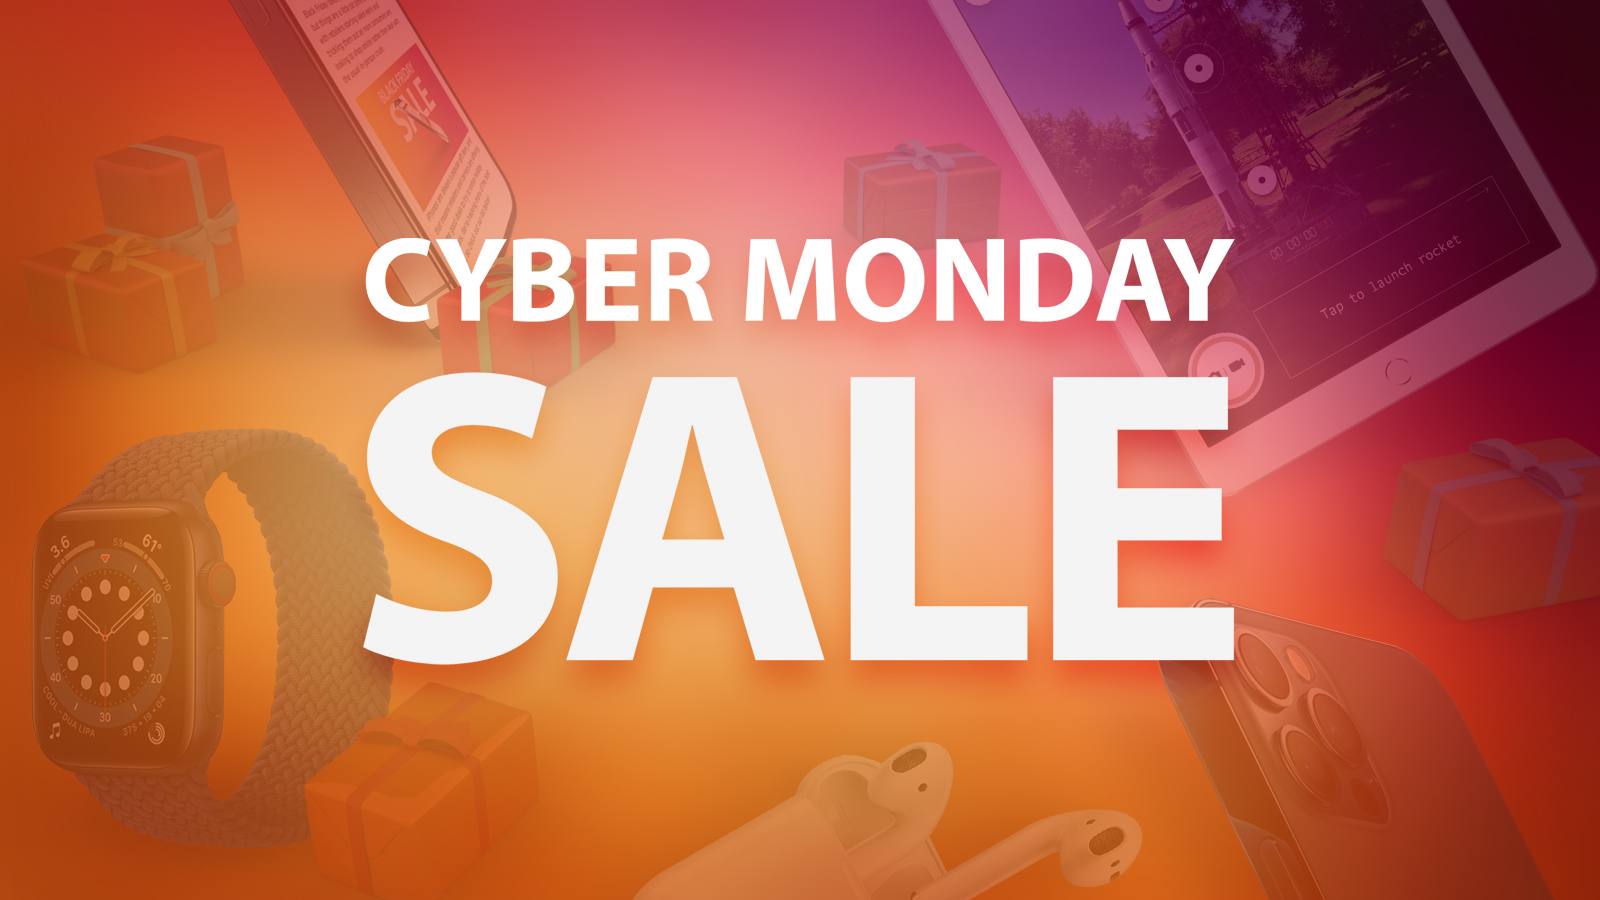 Apple Cyber Monday 2020: Save on Mac Software, Apple Accessories, and More